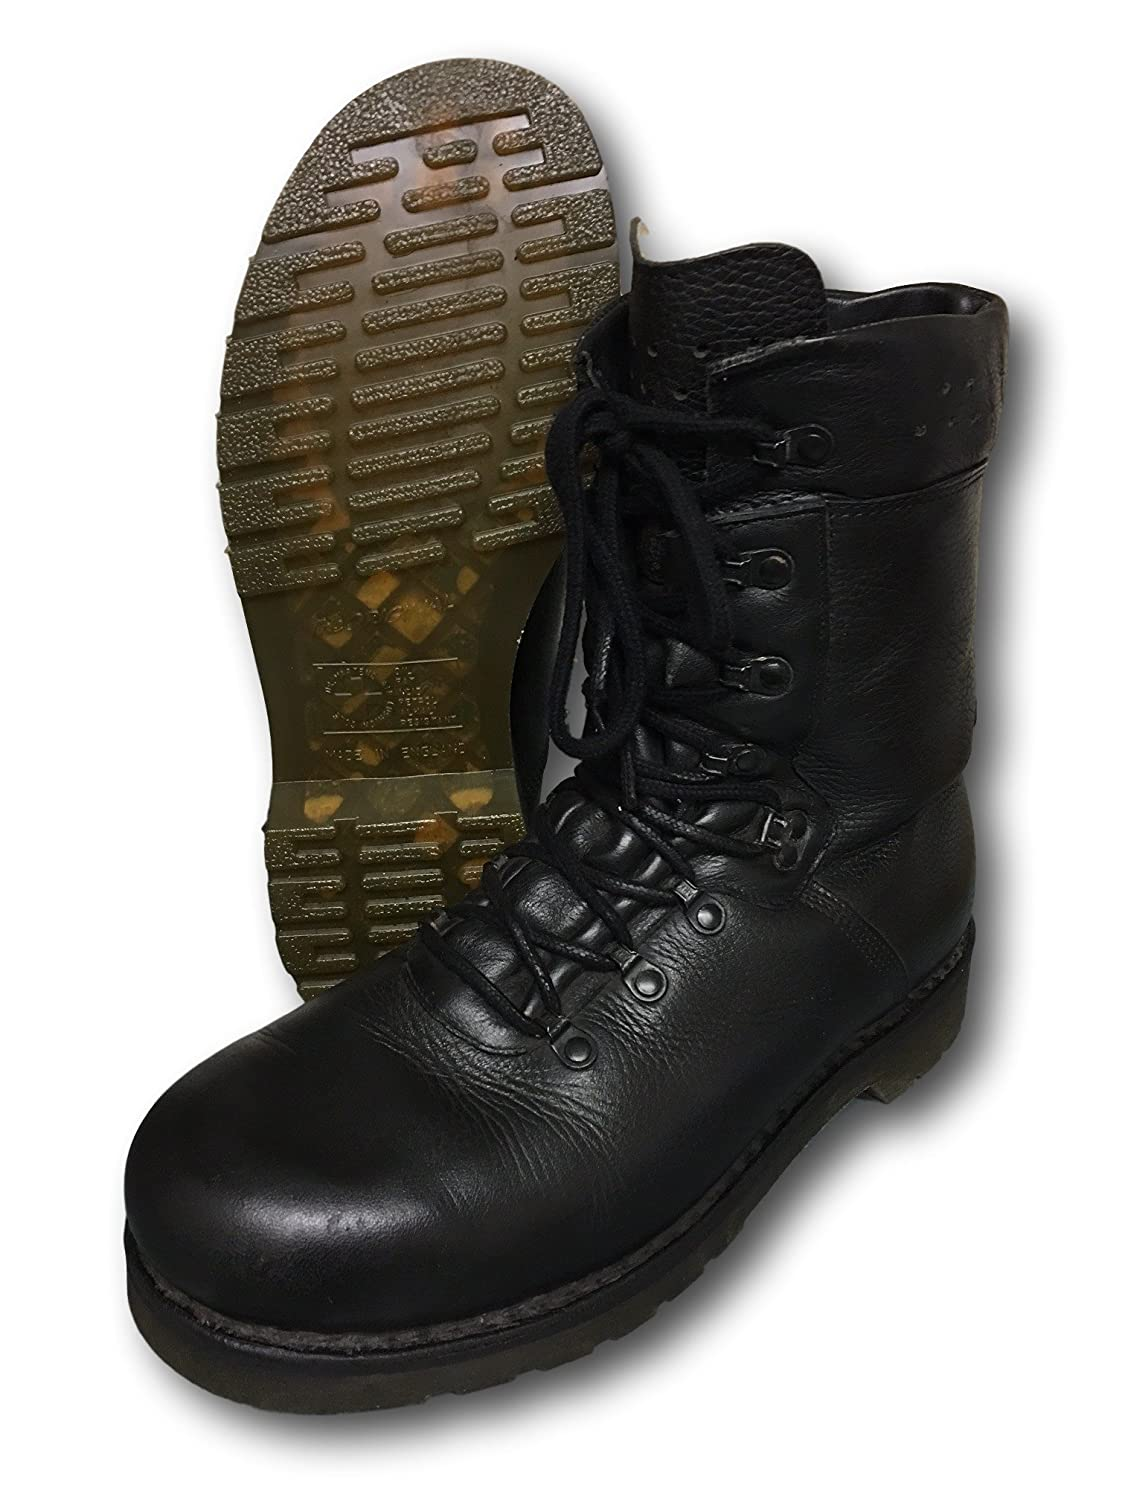 9c5abe04764 German Paratrooper Boots with Airwear soles